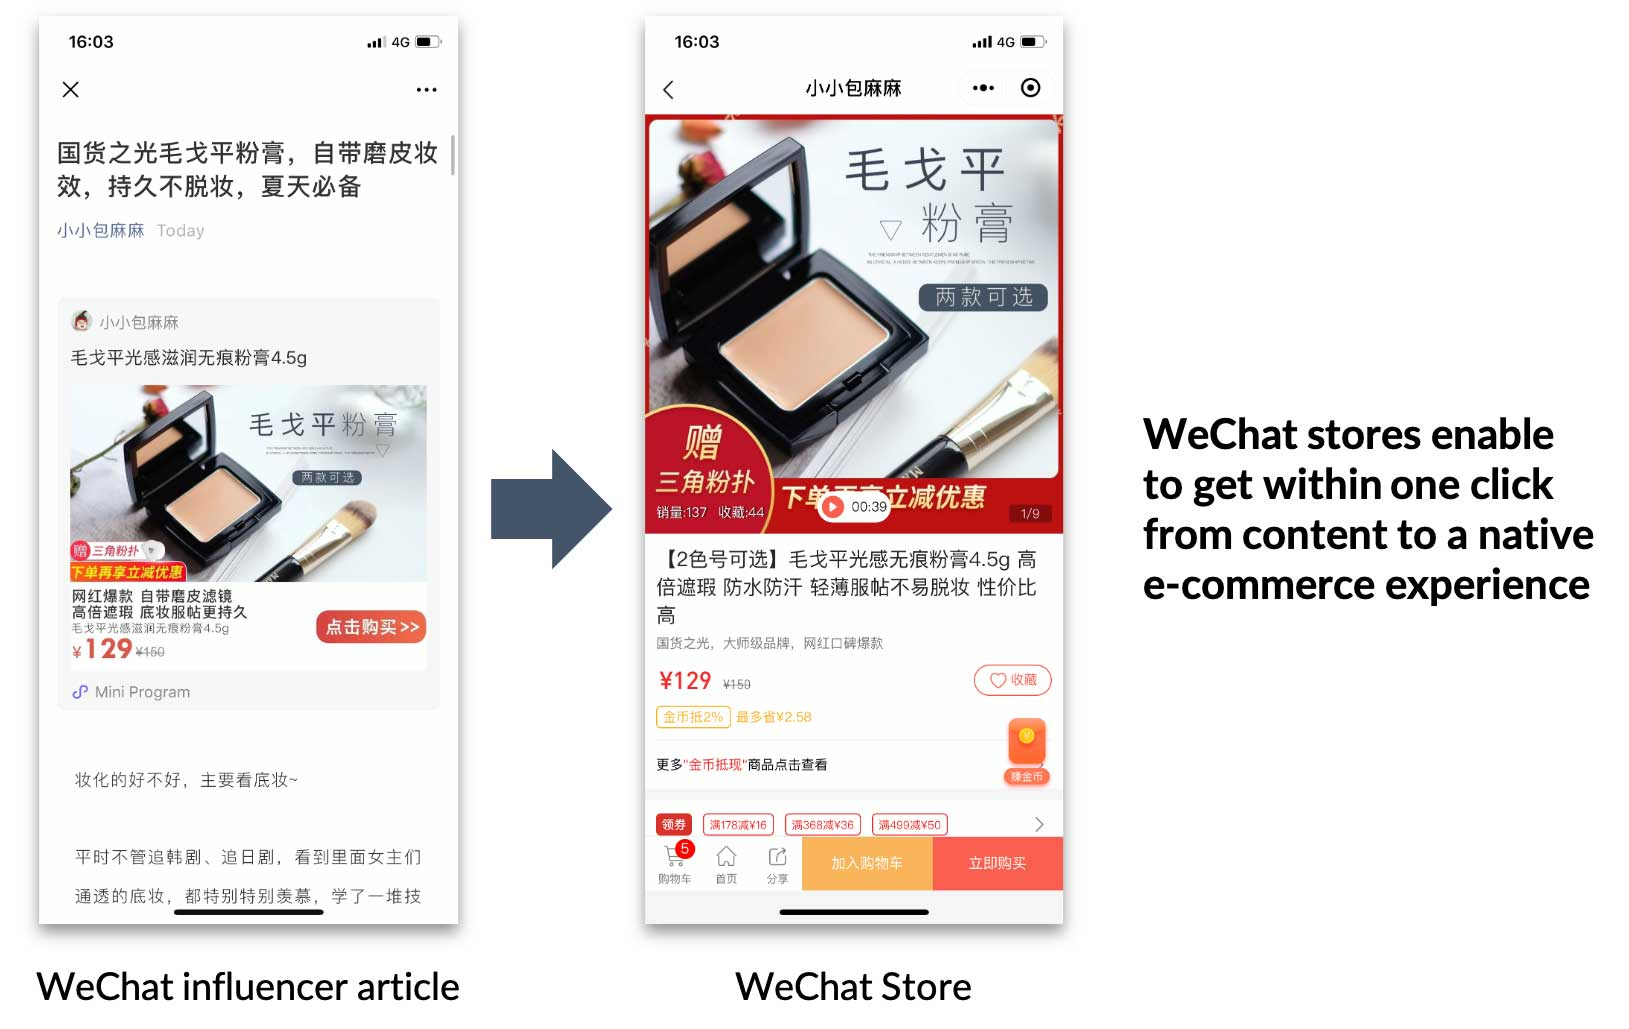 WeChat stores seamlessly let users go from content to ecommerce experience